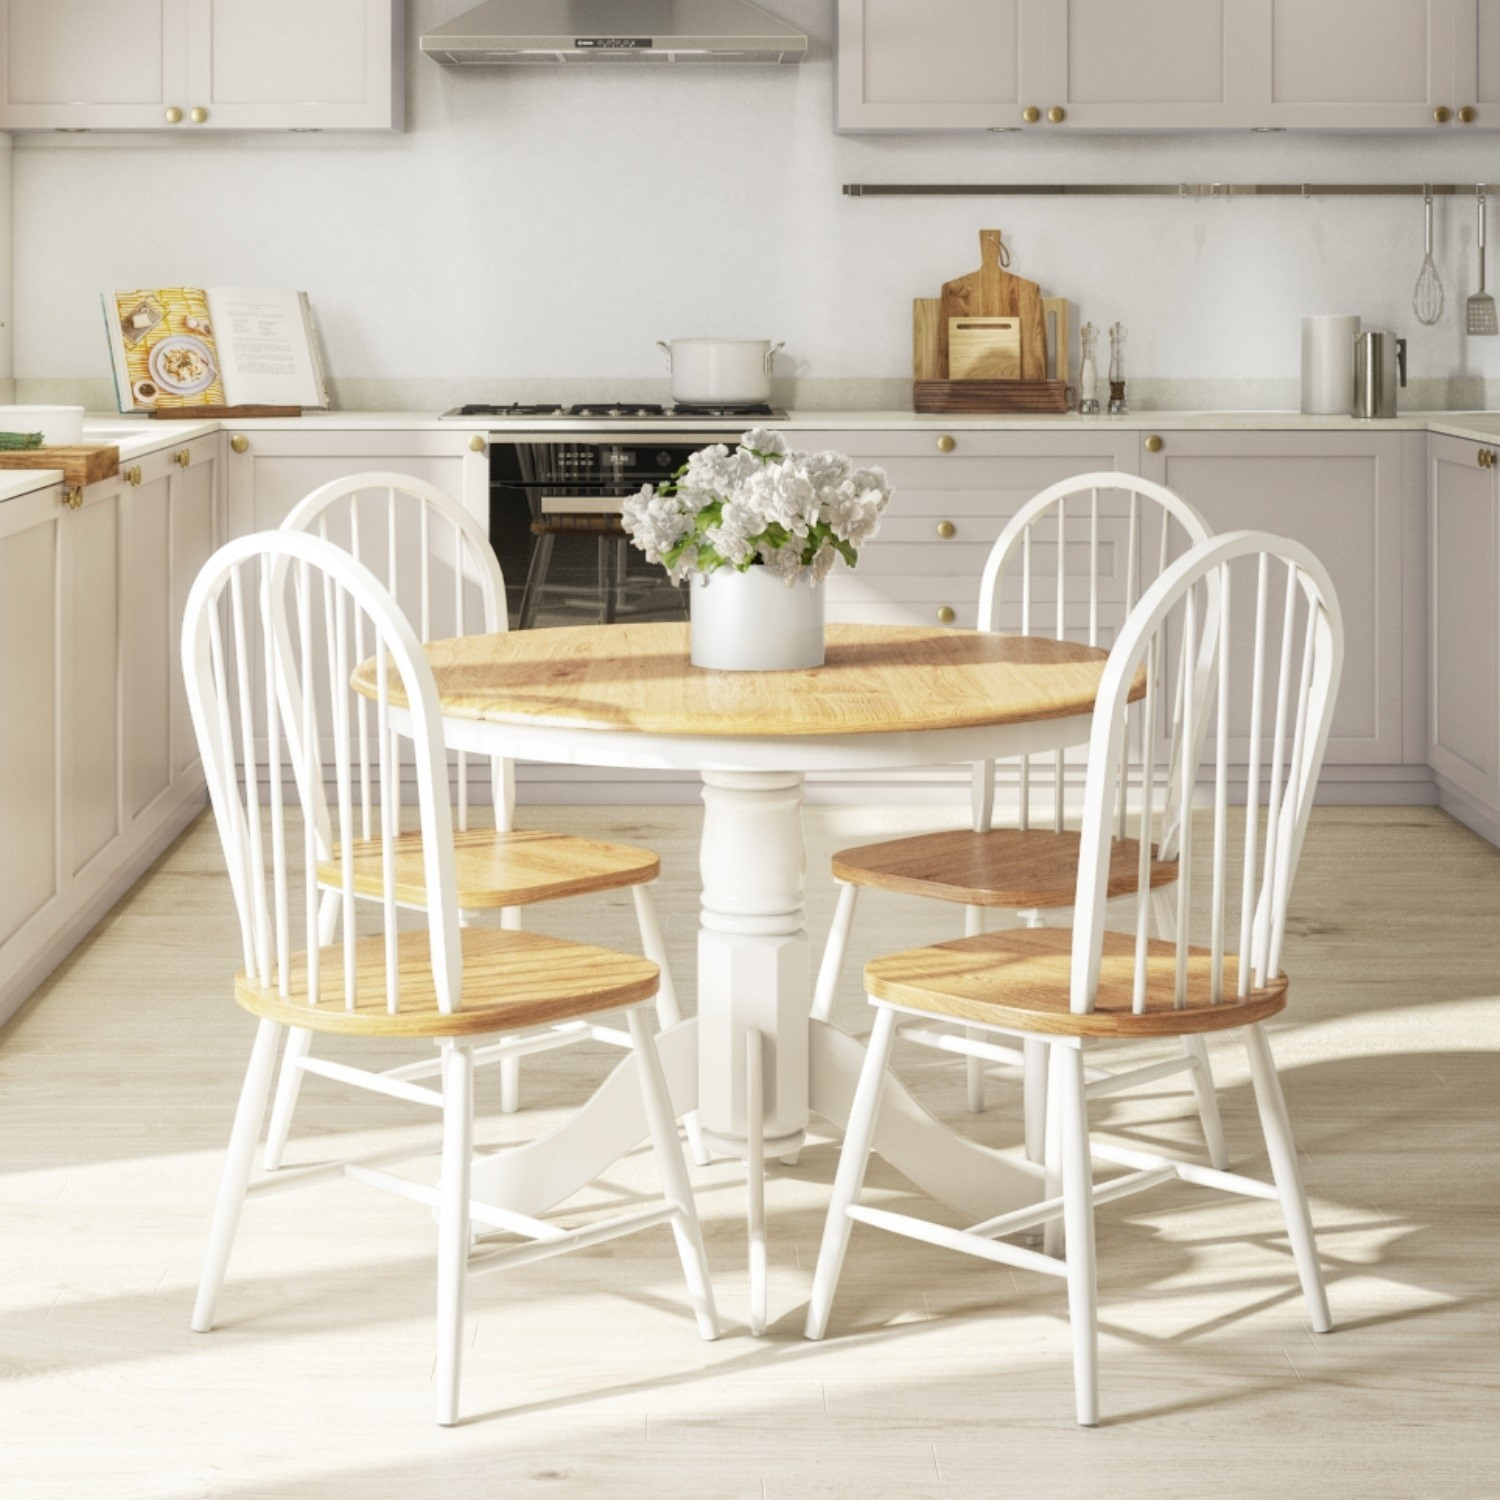 Round Kitchen Table And Chairs: Rhode Island Natural & White Round Kitchen Dining Table